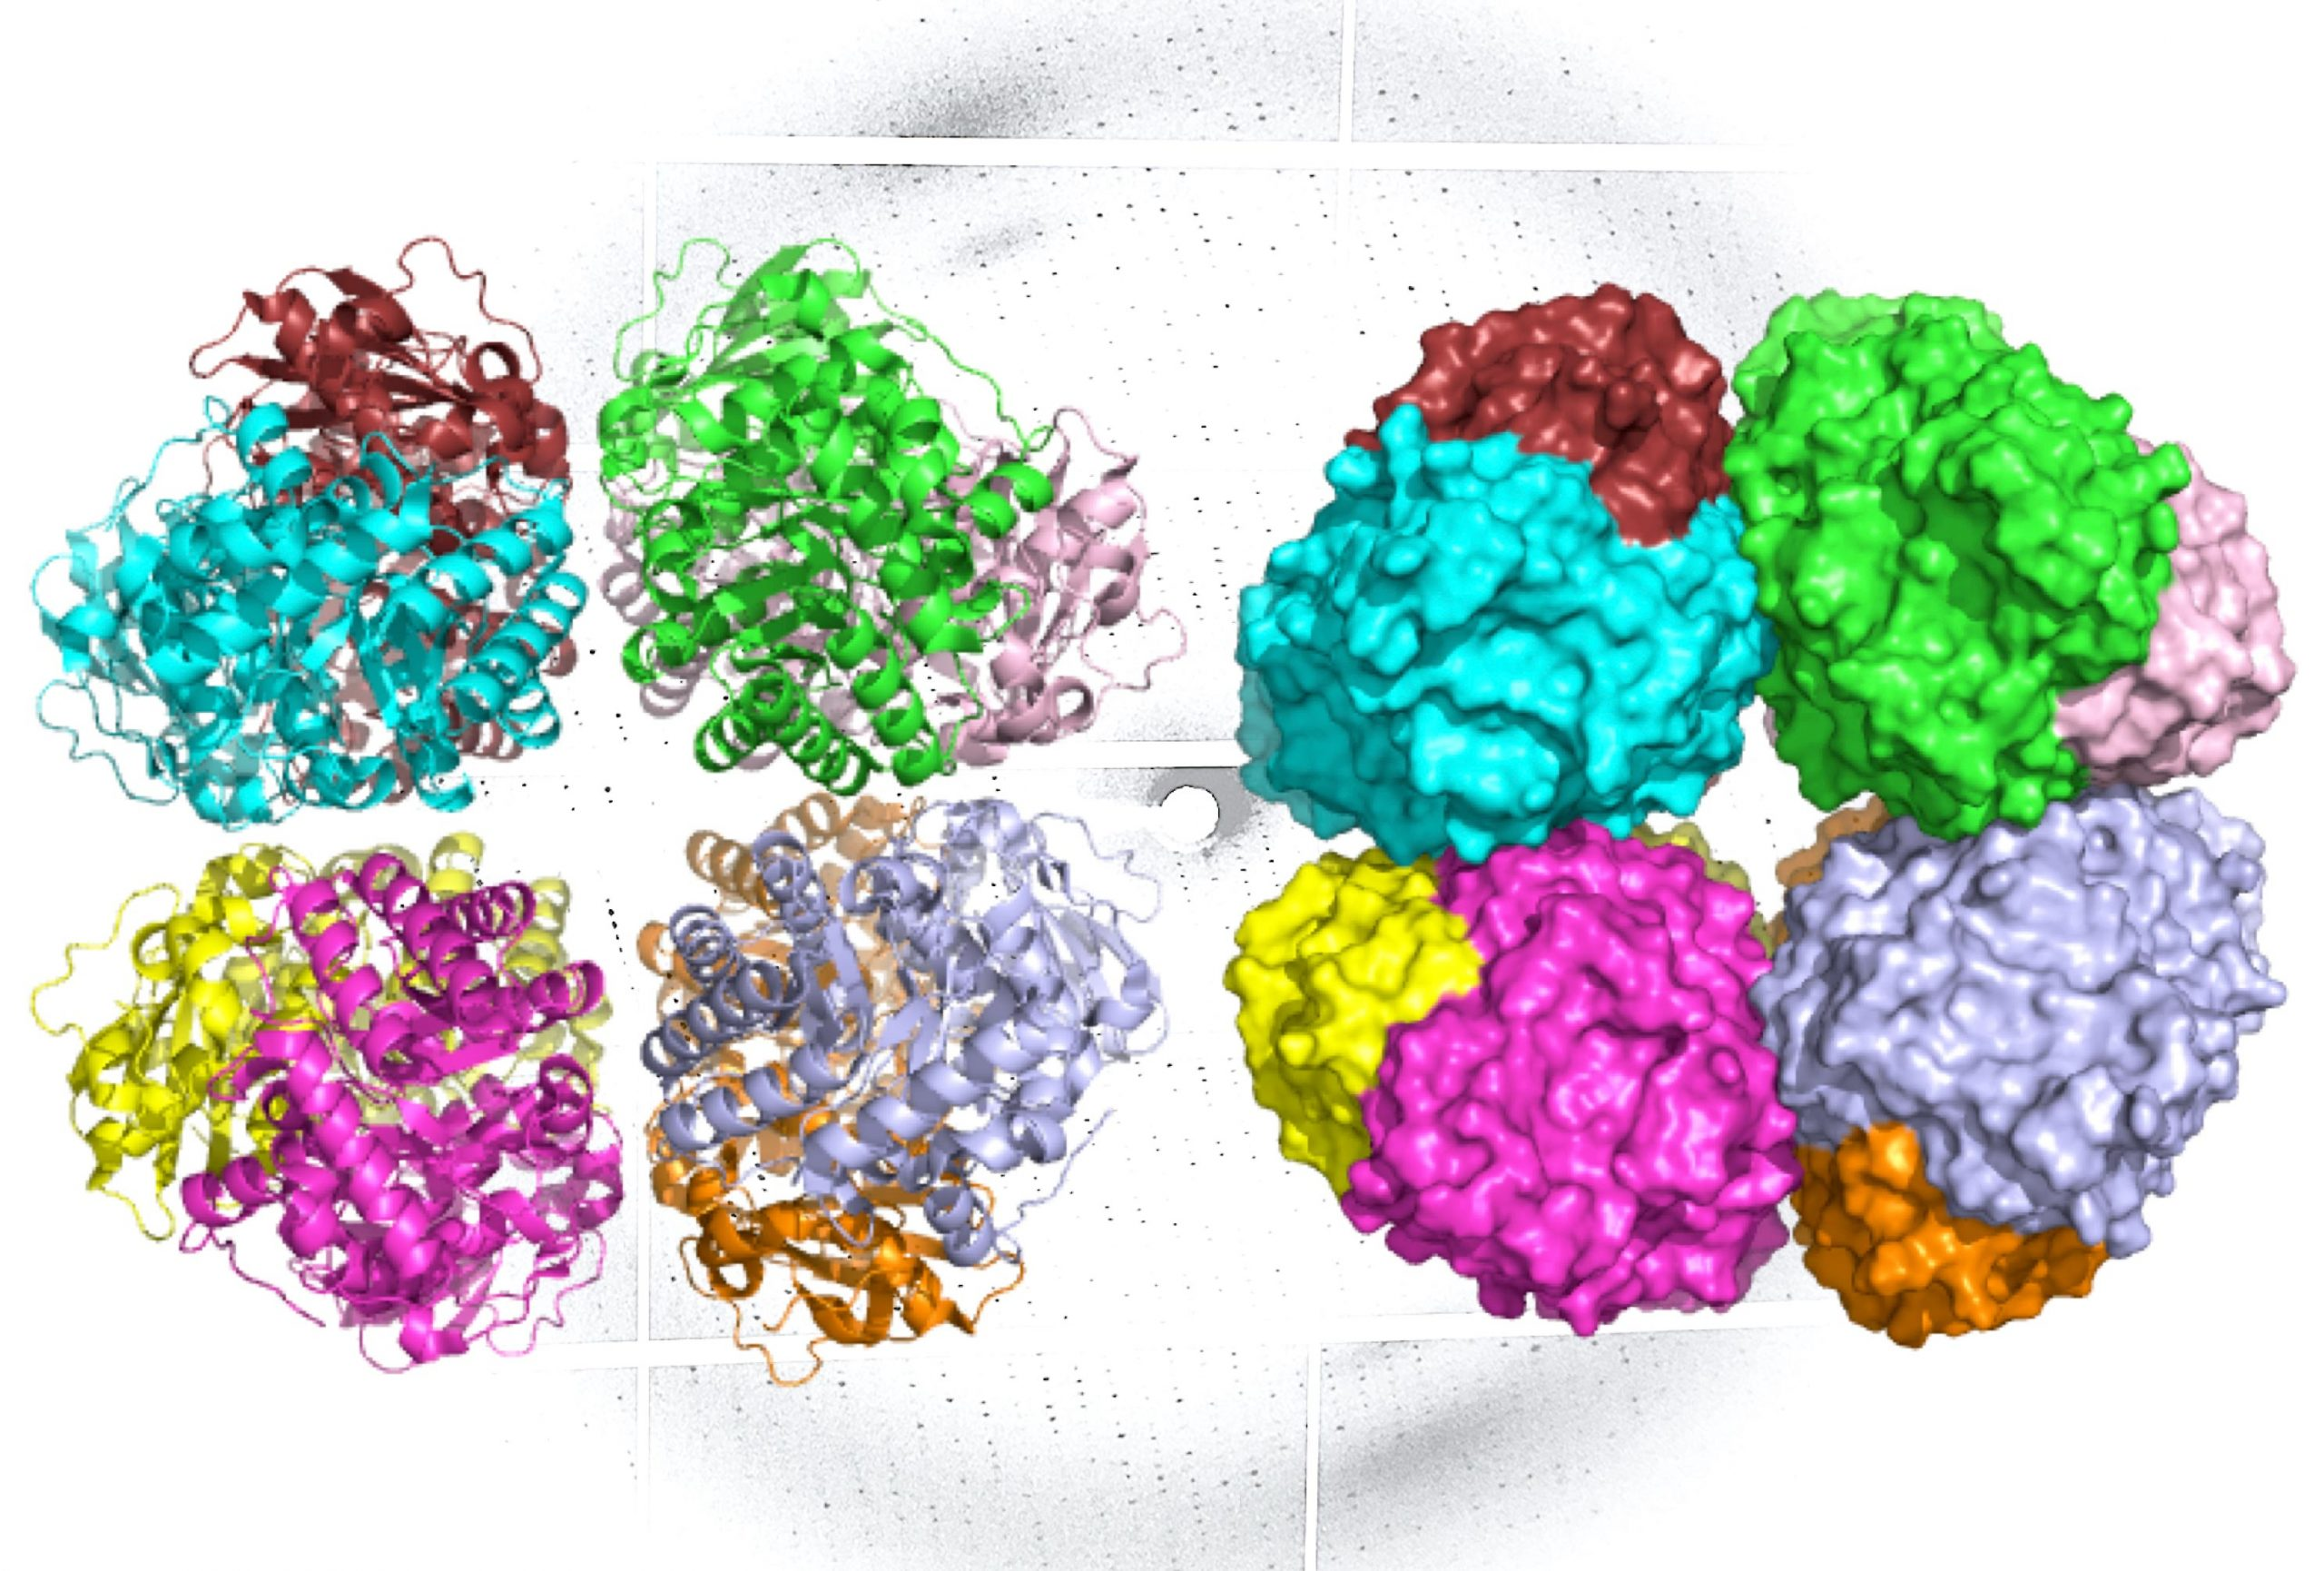 """""""Missing Link"""" Discovered in the Evolutionary History of Carbon-Fixing Protein Rubisco"""